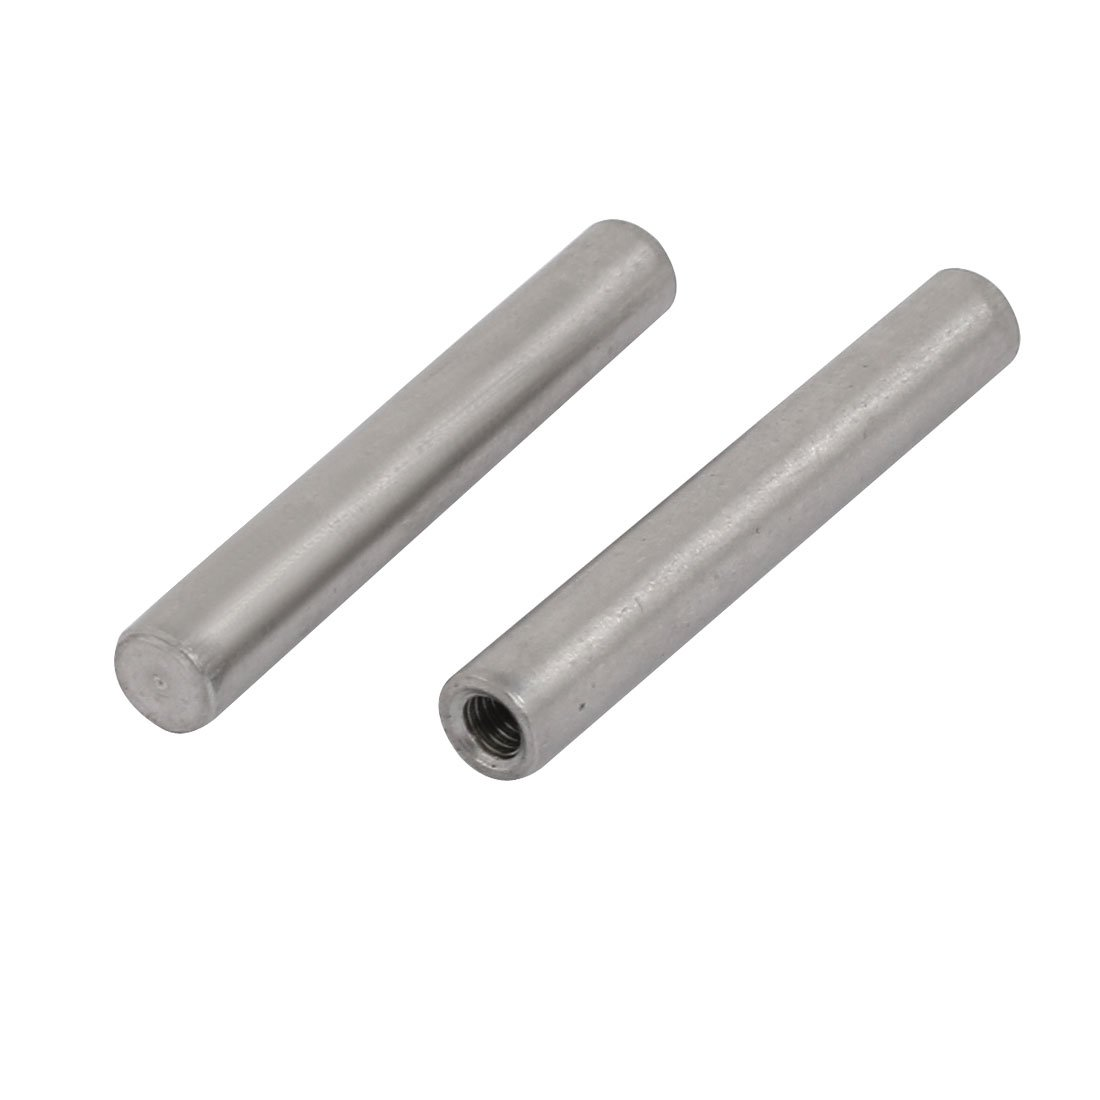 sourcingmap 304 Stainless Steel M3 Female Thread 5mm x 35mm Cylindrical Dowel Pin 2pcs a17110100ux0034